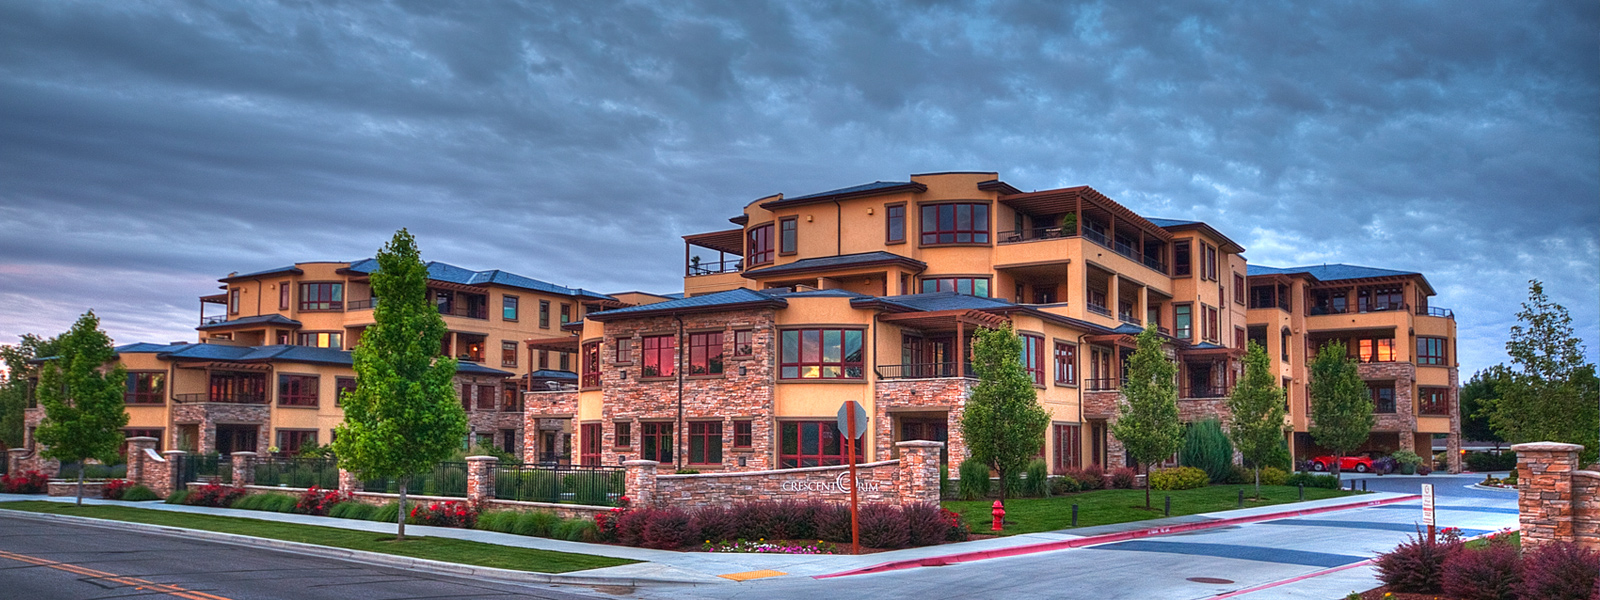 Spectacula condominiums at crescent rim boise idaho boise 39 s ultimate home search for Swimming pool contractors boise idaho